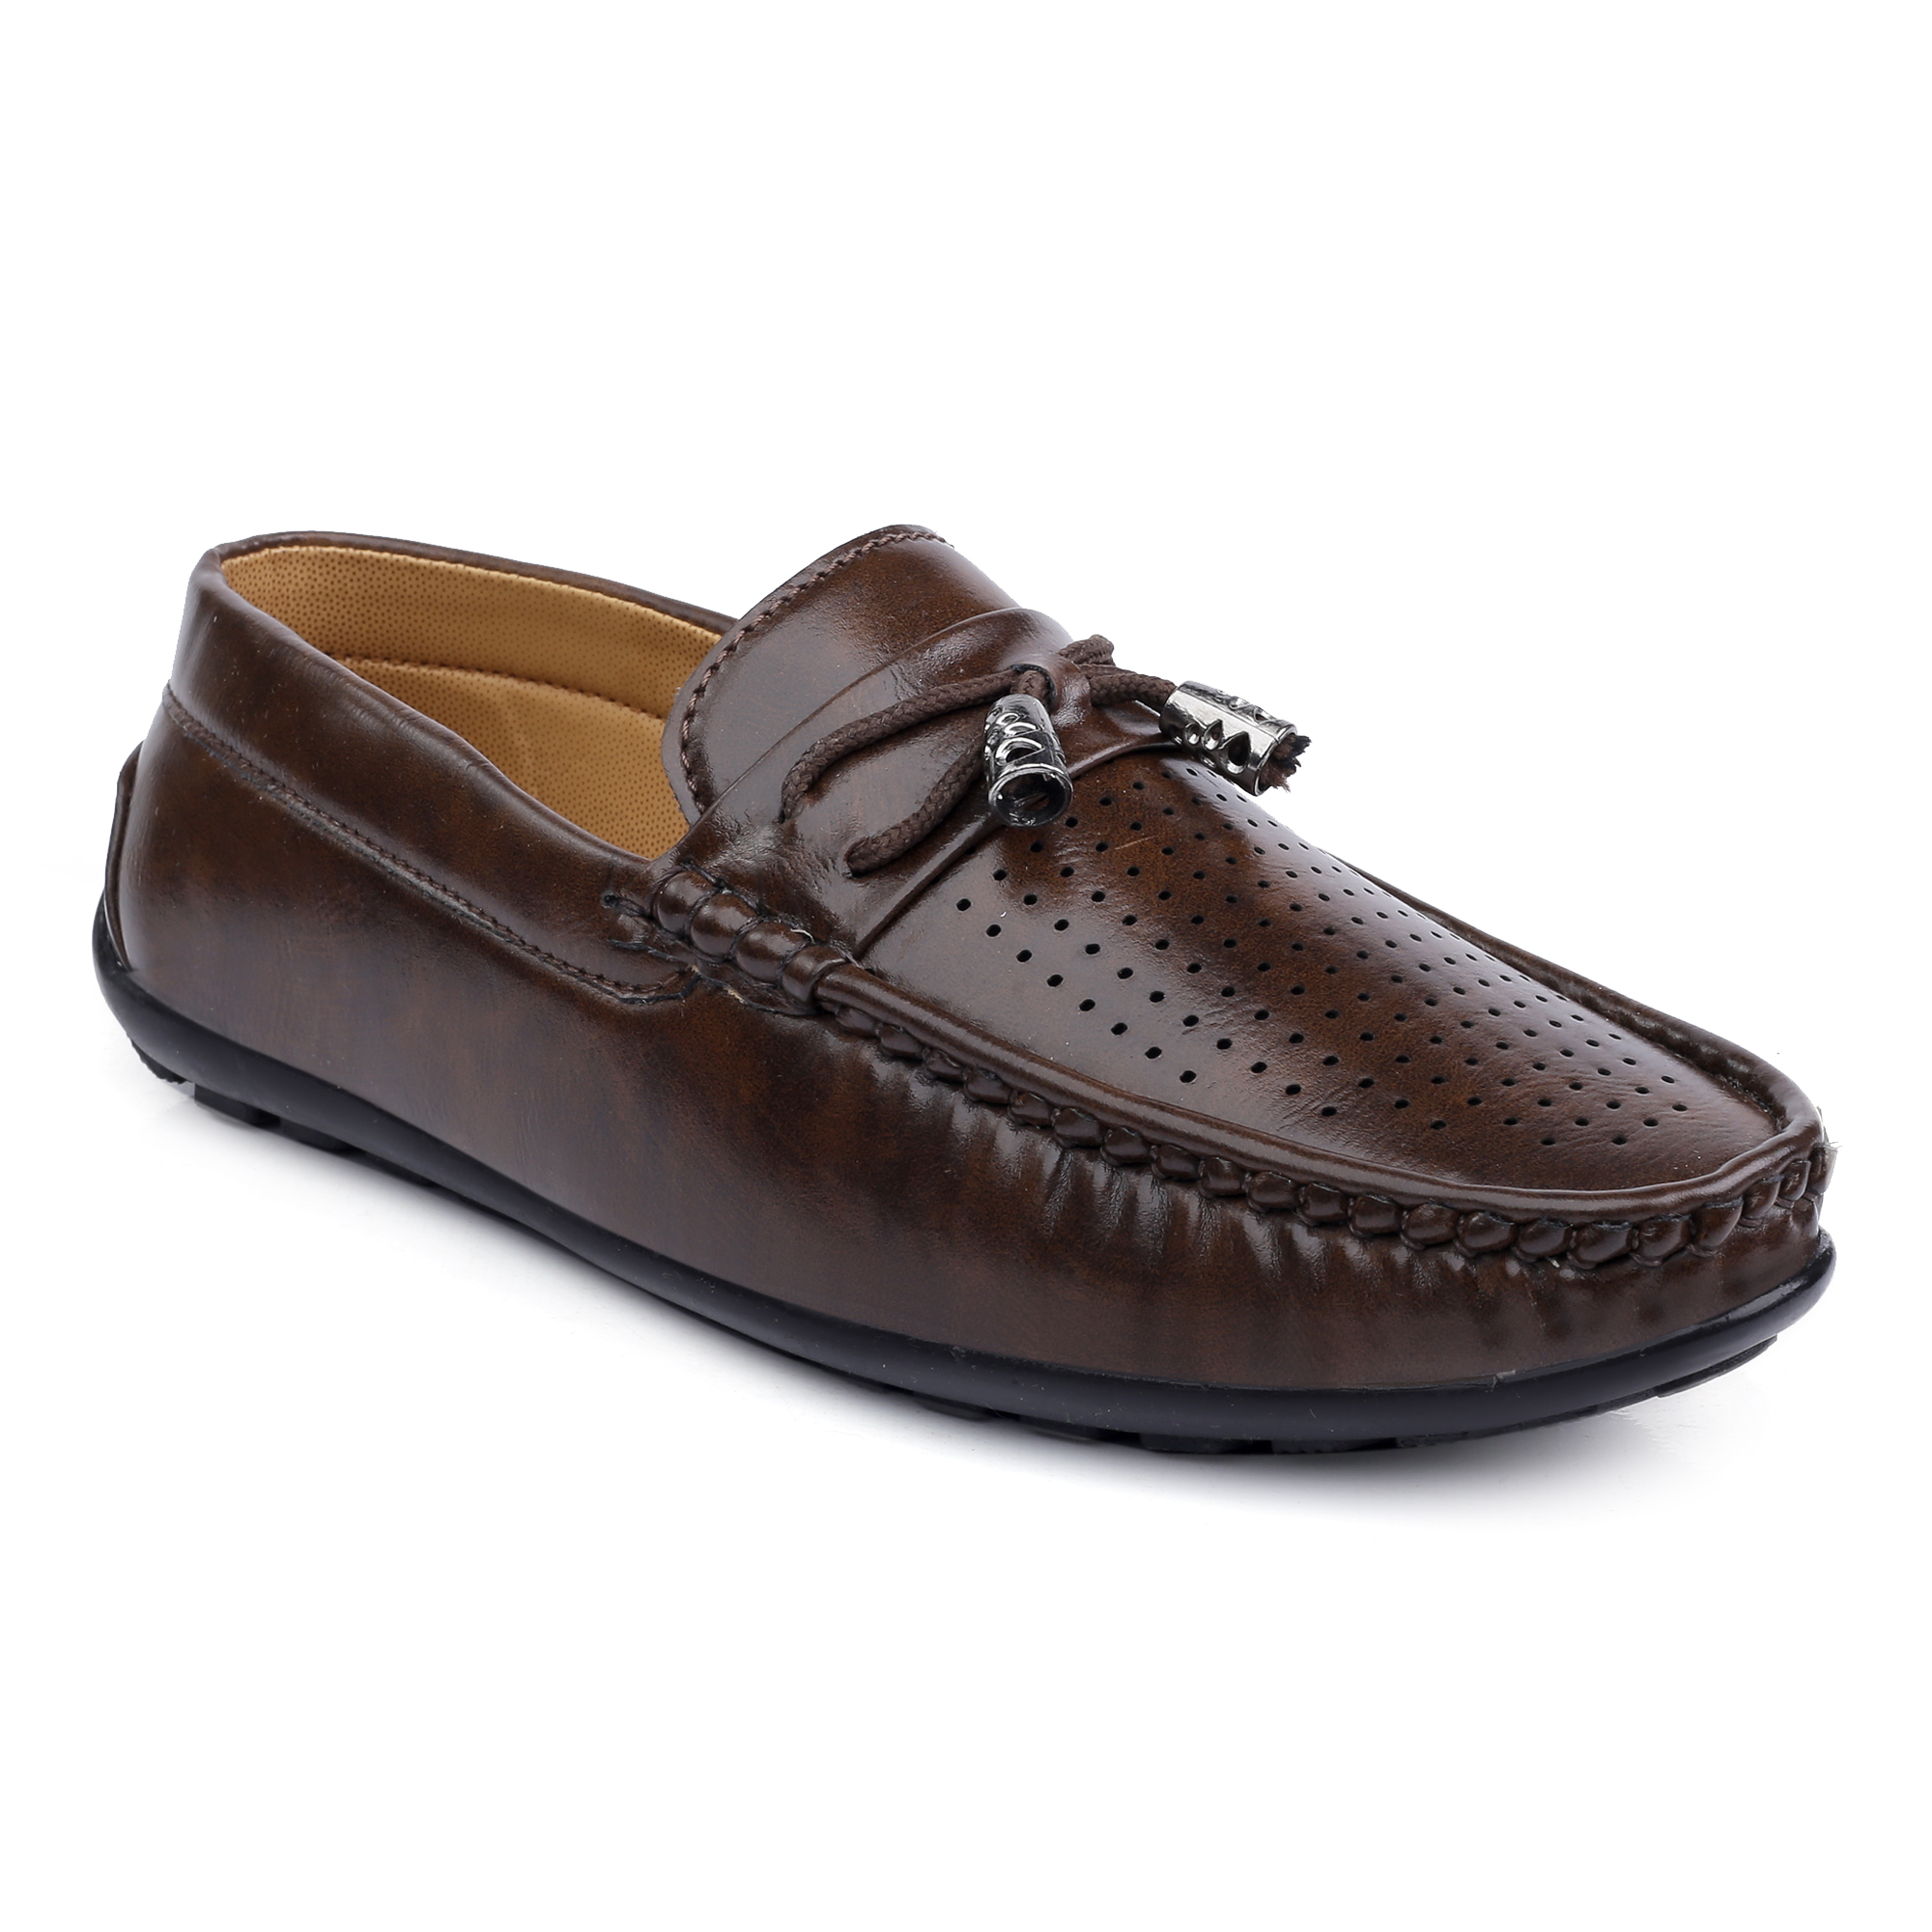 IMCO597.5000_BR STYLISH & FANCY LOAFER SHOE FOR BOYS IMCO597.5000_BR (BROWN, 2TO5, 8 PAIRS)